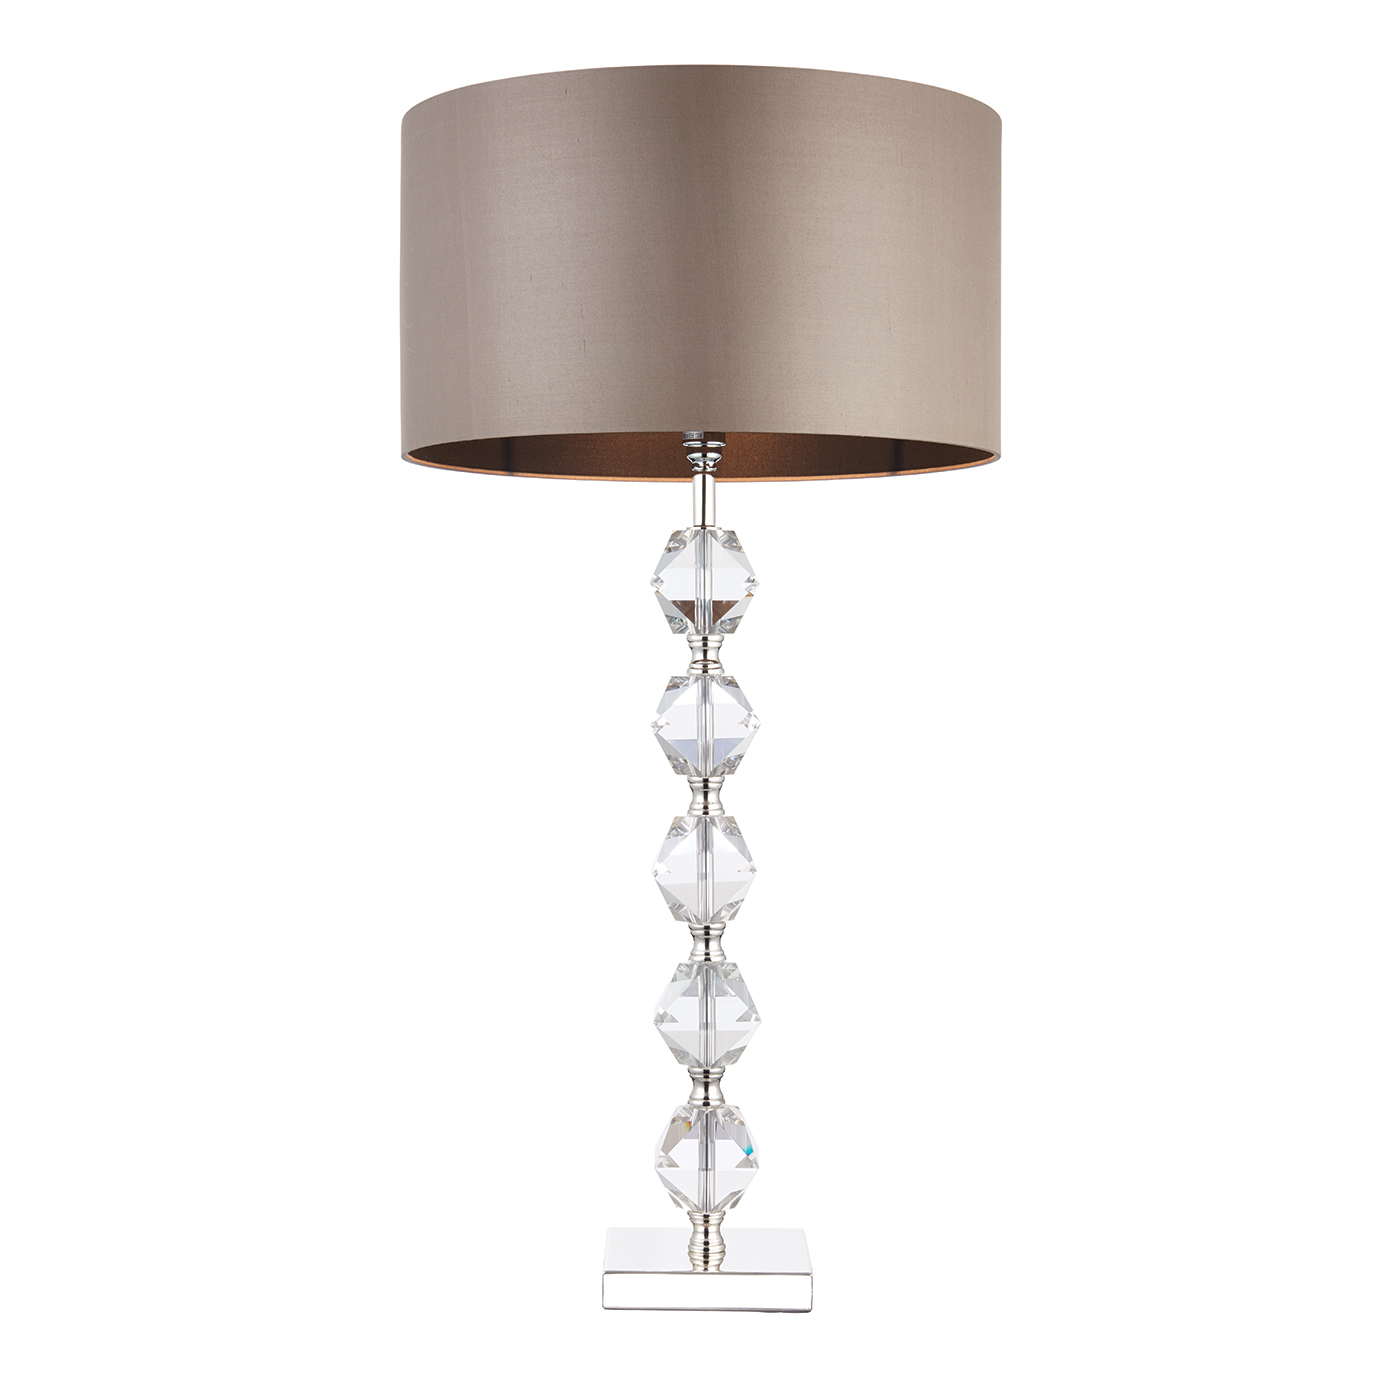 Endon Verdone table lamp 60W Clear crystal (k9) glass detail & taupe silk